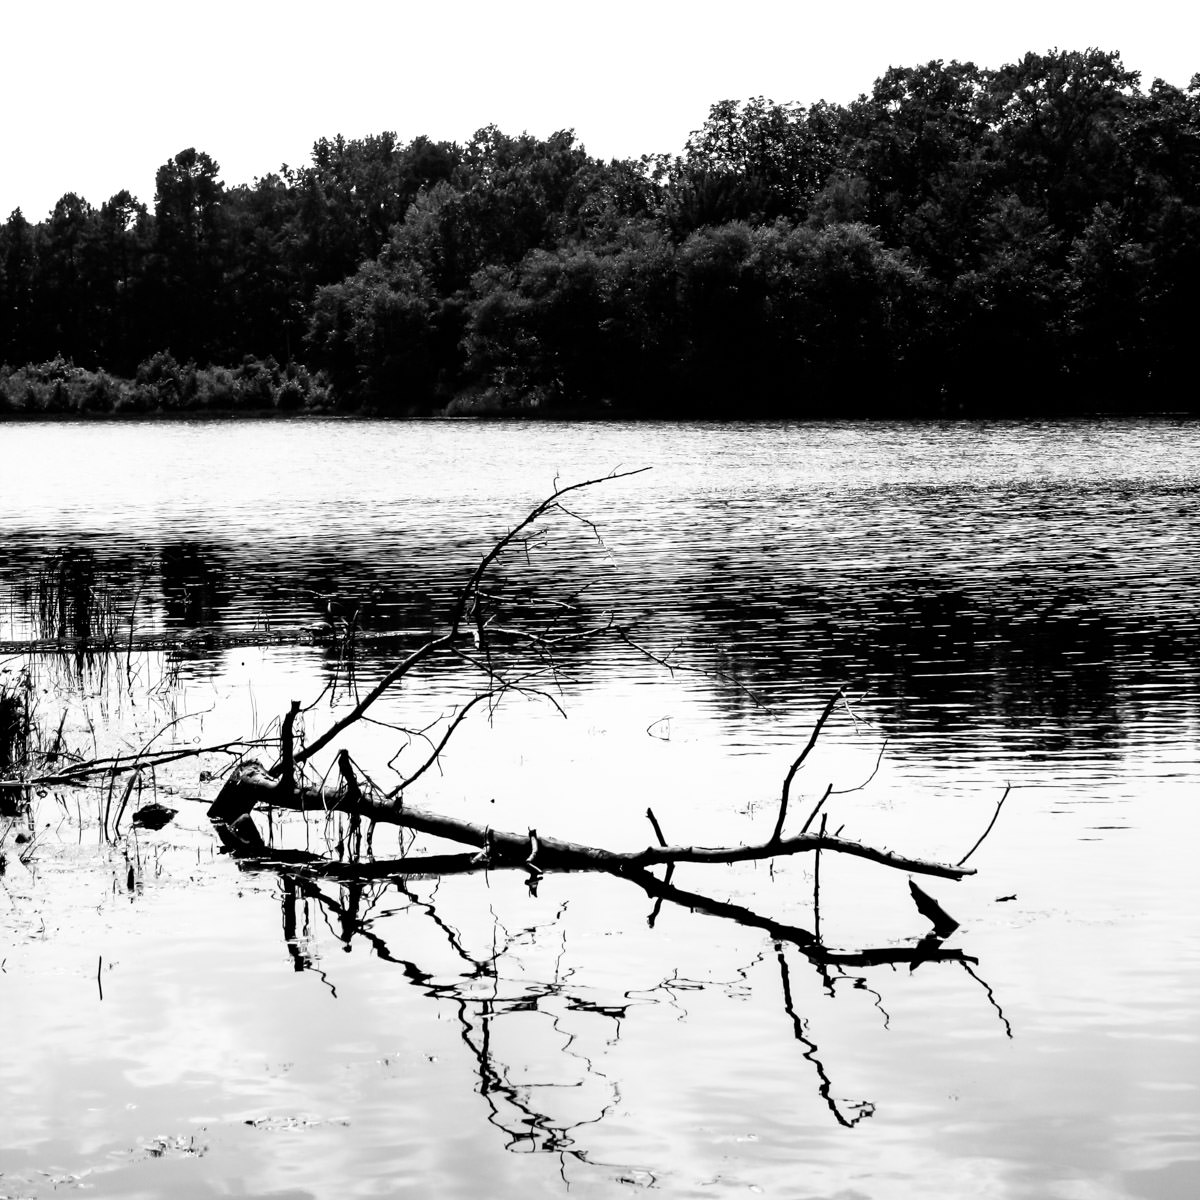 A tree branch pokes out of the lake at Tyler State Park, Texas.